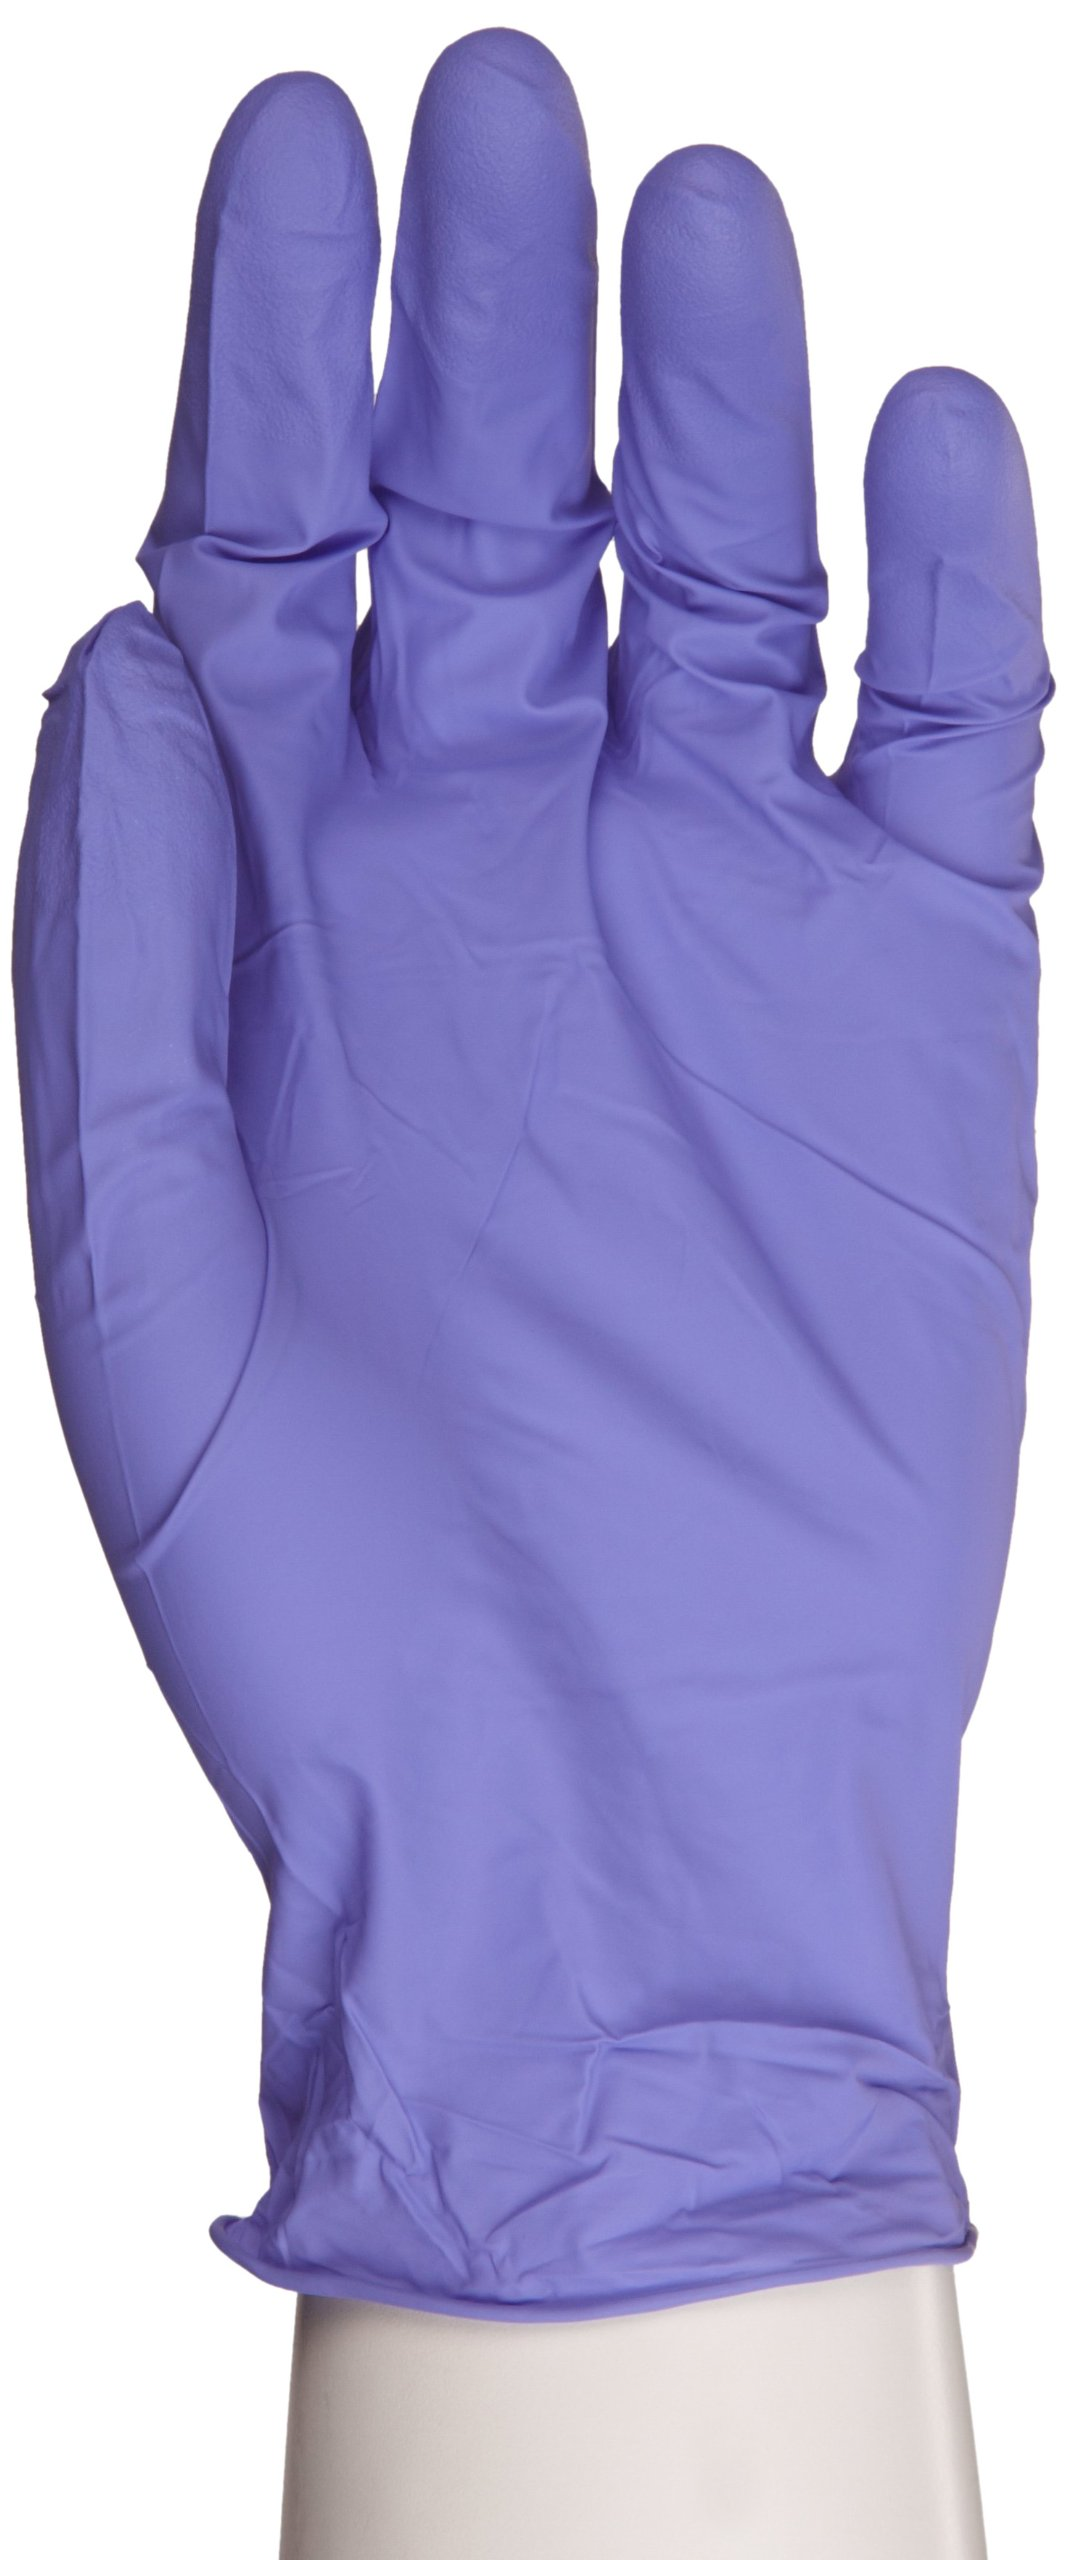 Microflex Supreno SE Nitrile Glove, Powder Free, 9.6'' Length, 4.7 mils Thick, X-Large (Pack of 1000)